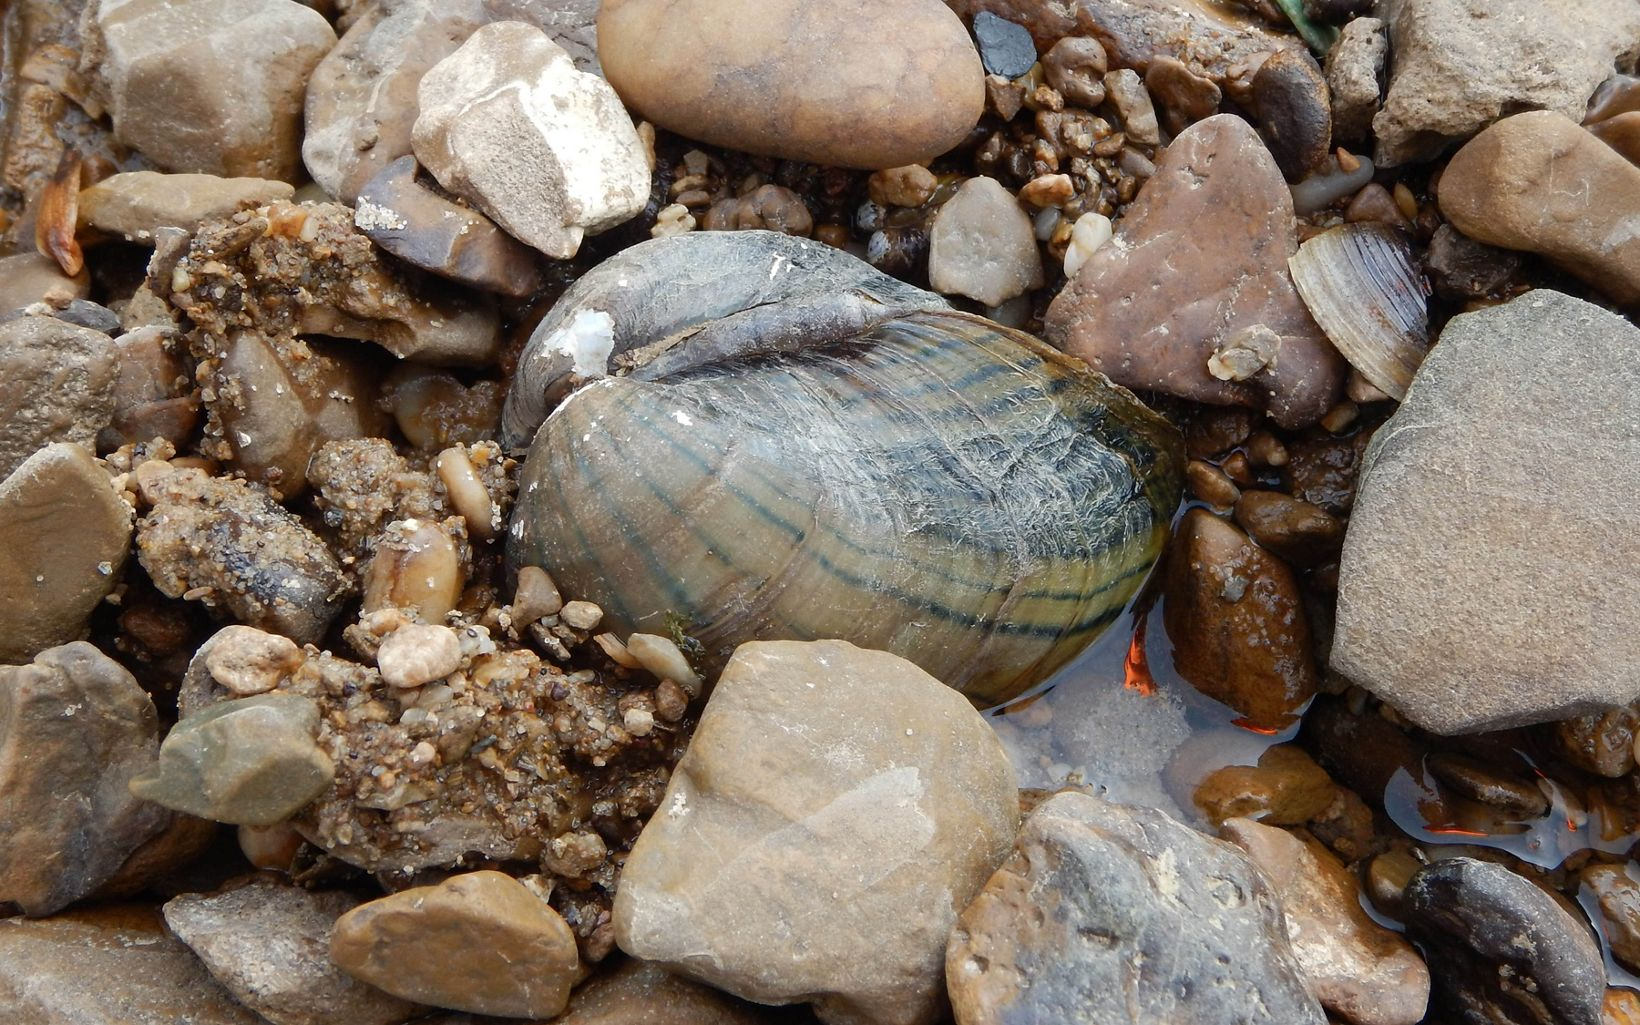 A collection of mussels are found along a riverbank.